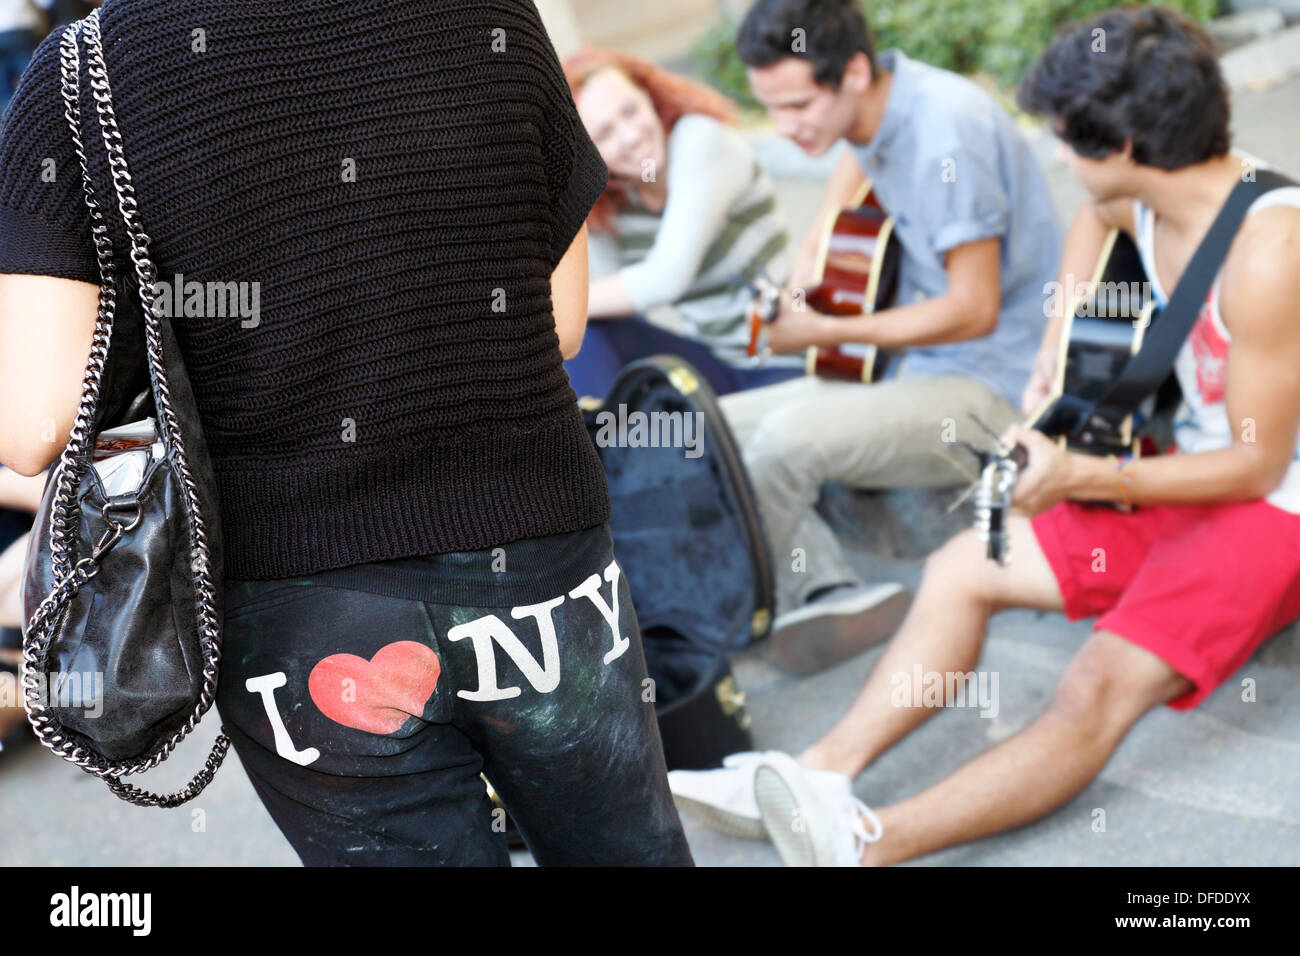 Woman watching and listening to street band playing music wearing pants with I heart (love) NY, New York, on. - Stock Image